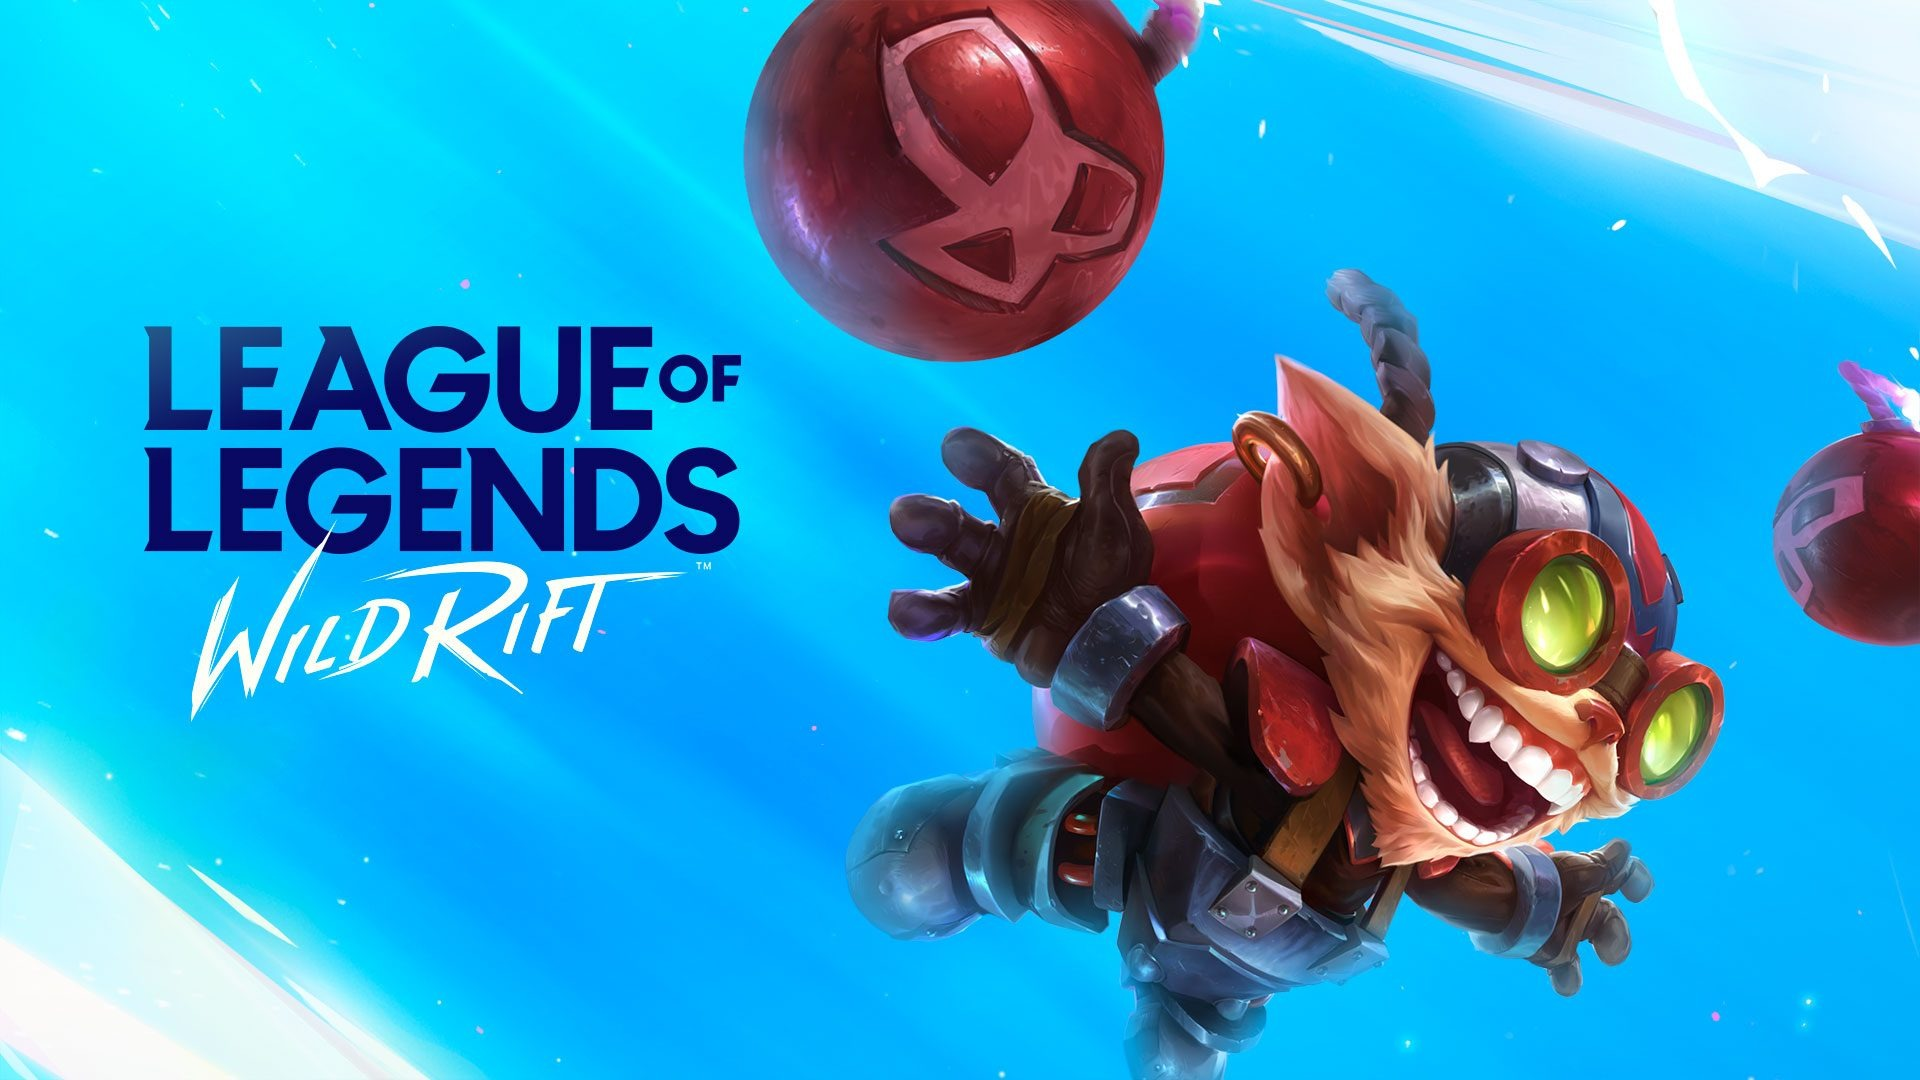 League of Legends: Wild Rift APK 2.1.0.3849 Download - Download League of Legends: Wild Rift APK 2.1.0.3849 Download for FREE - Free Cheats for Games